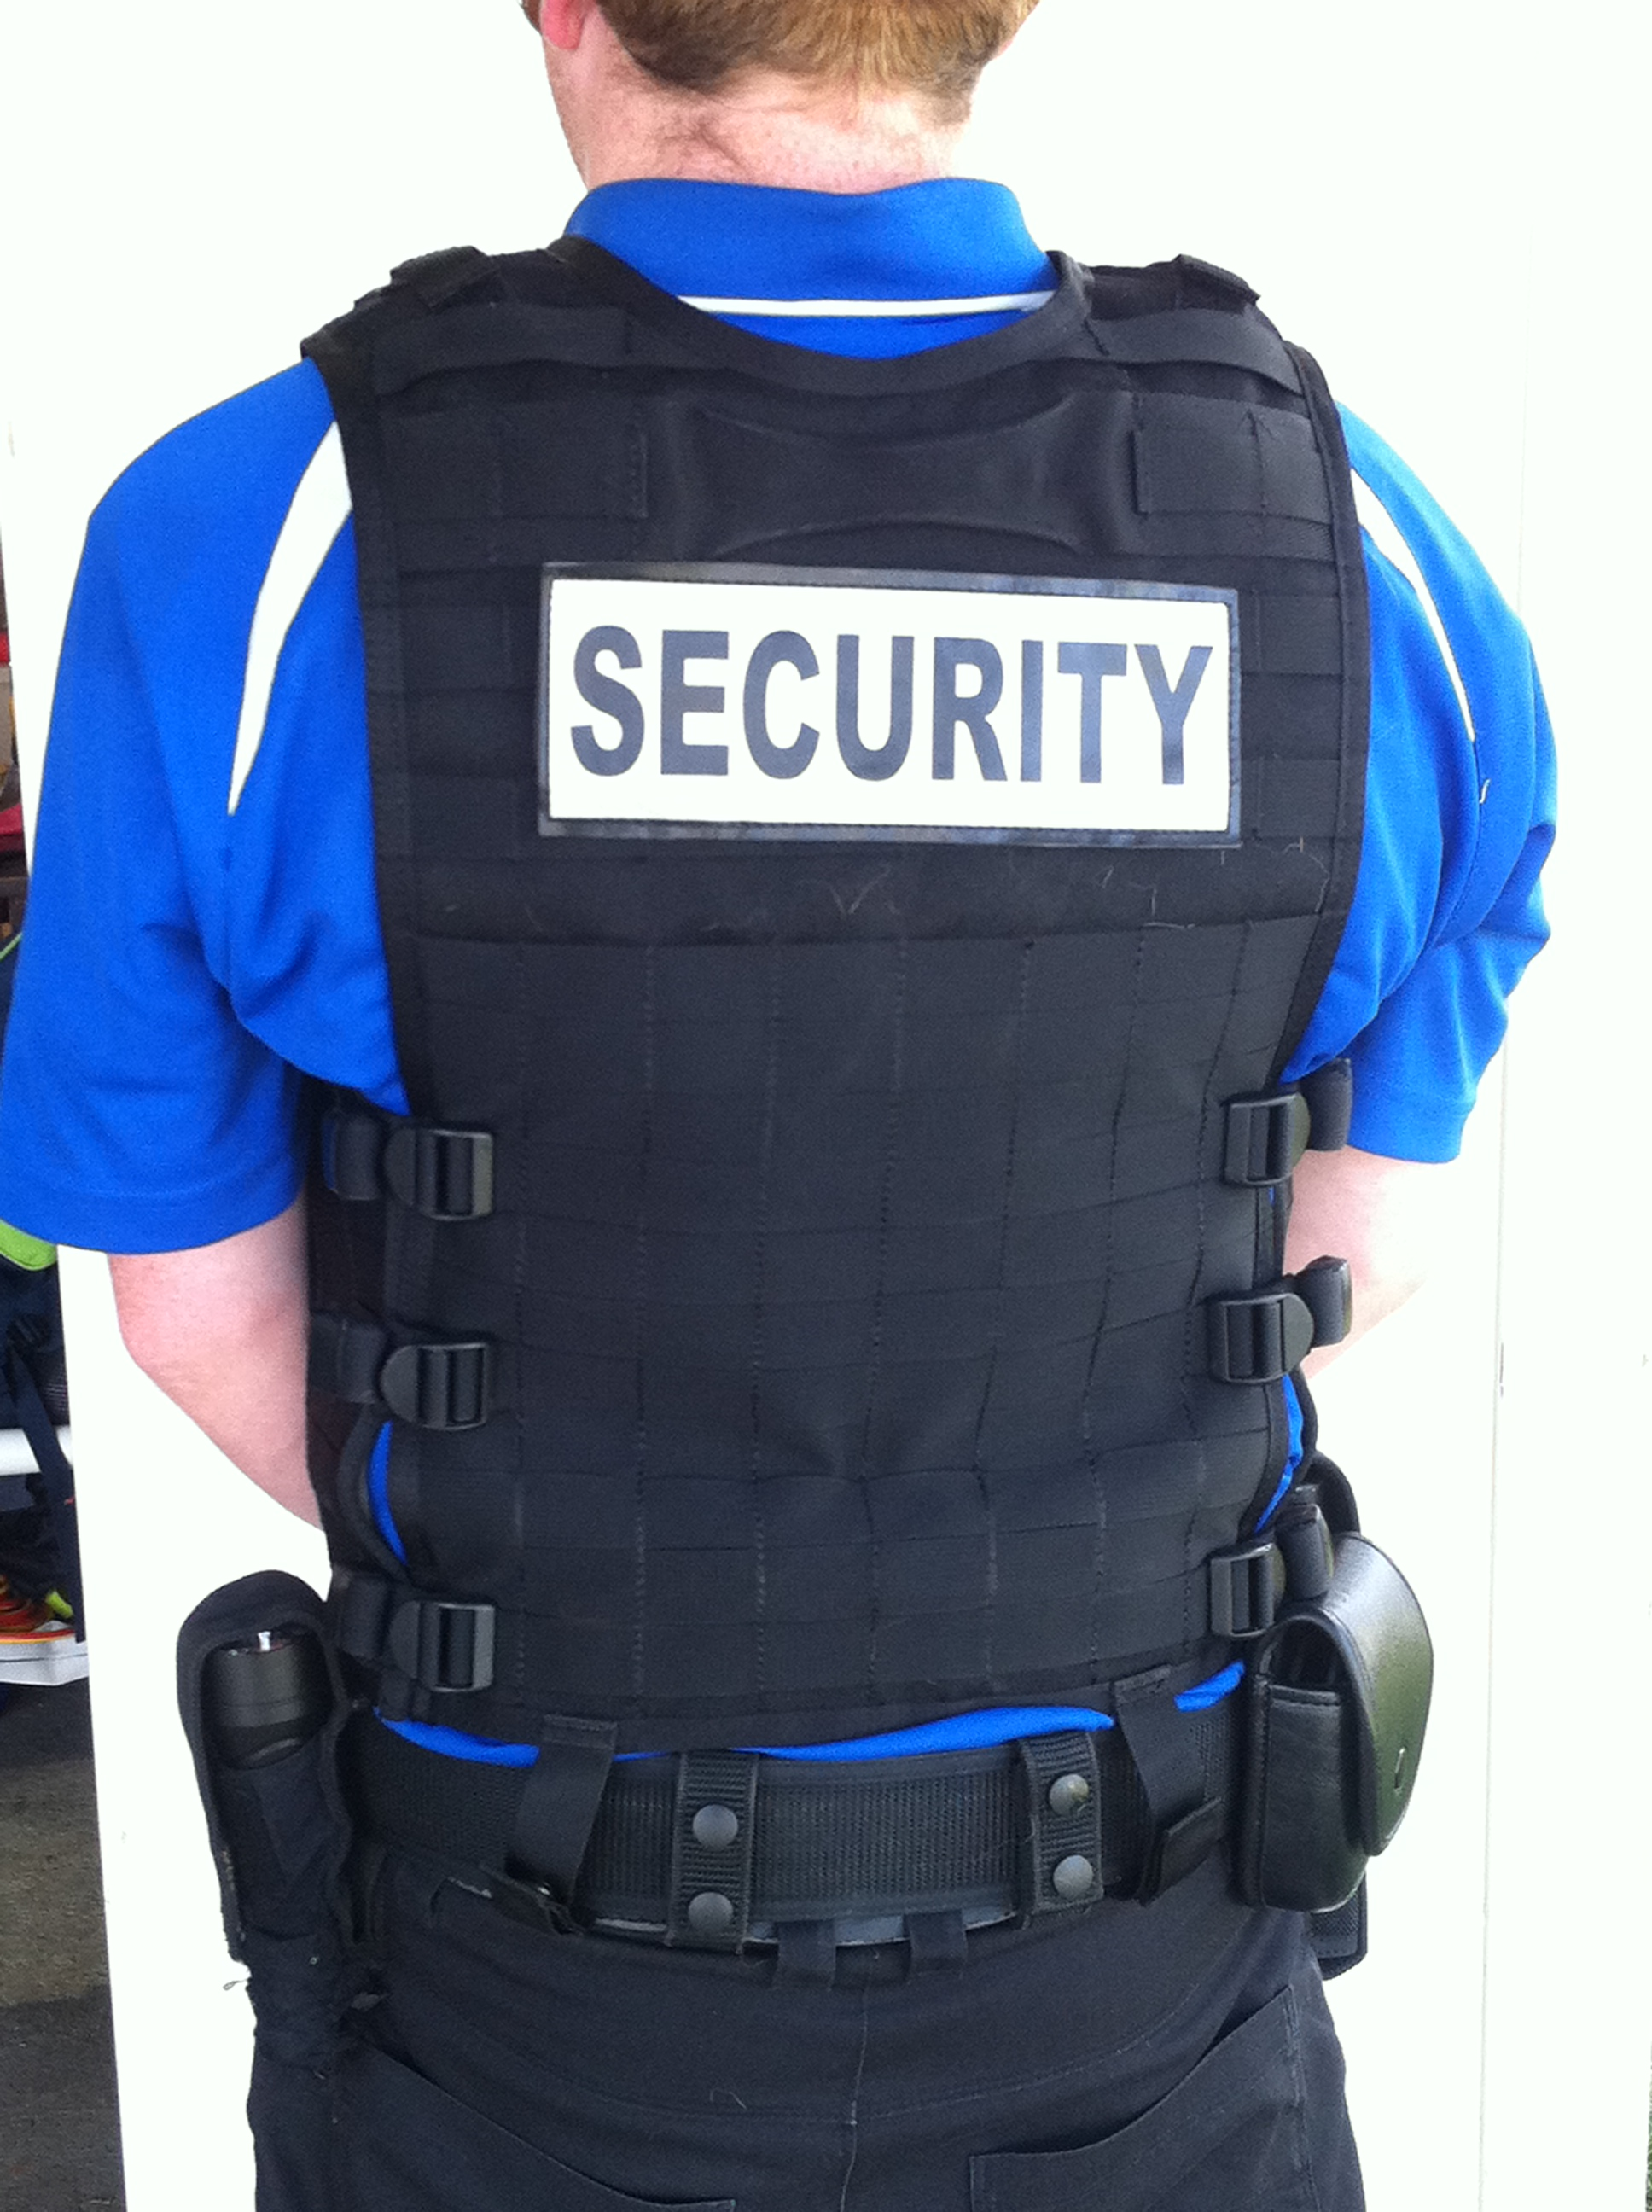 Security Officer Professionalism - Do You Have What It Takes?